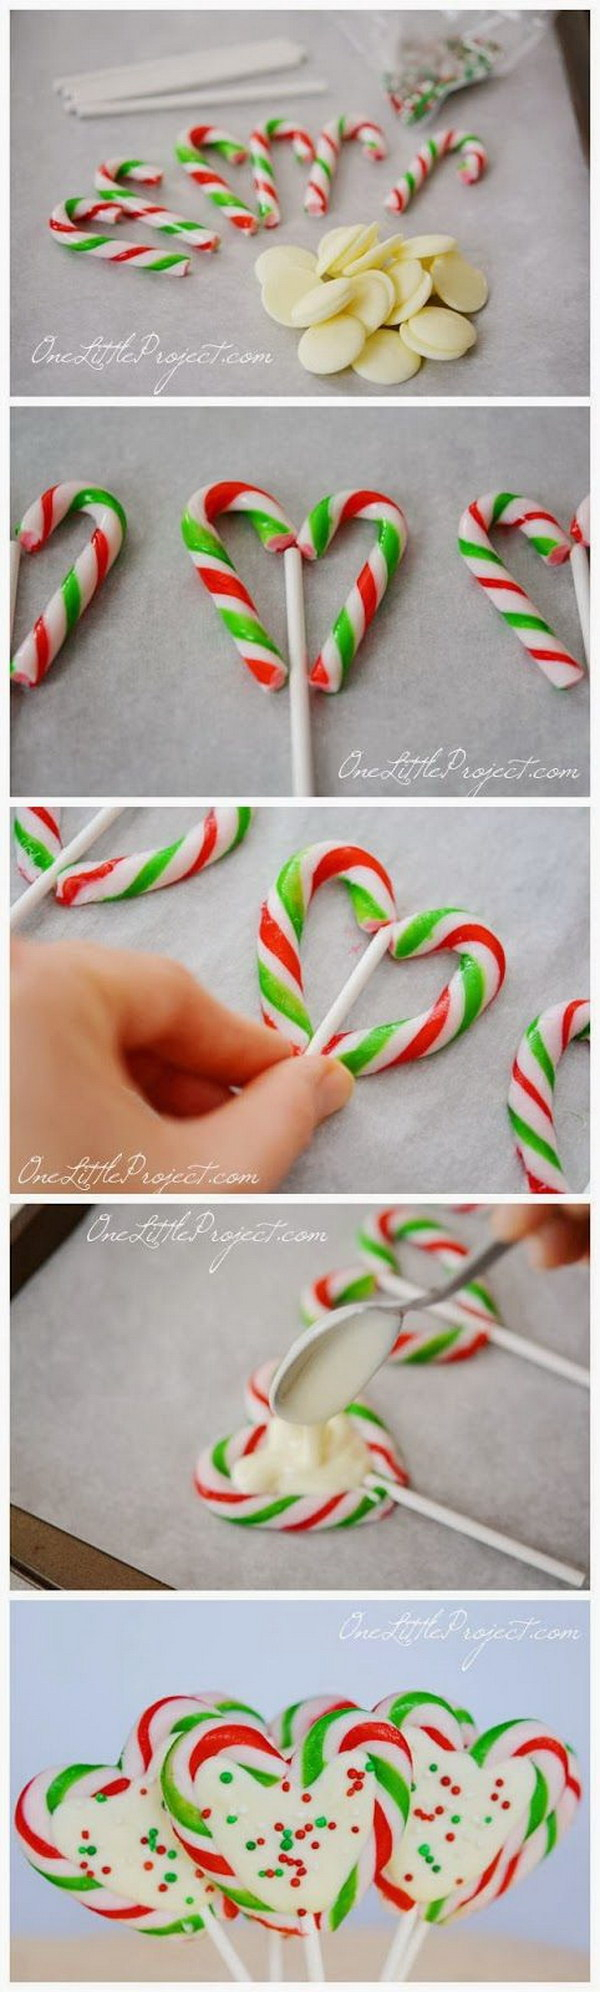 10 Stylish Candy Gift Ideas For Christmas creative candy gift ideas for this holiday 1 2020